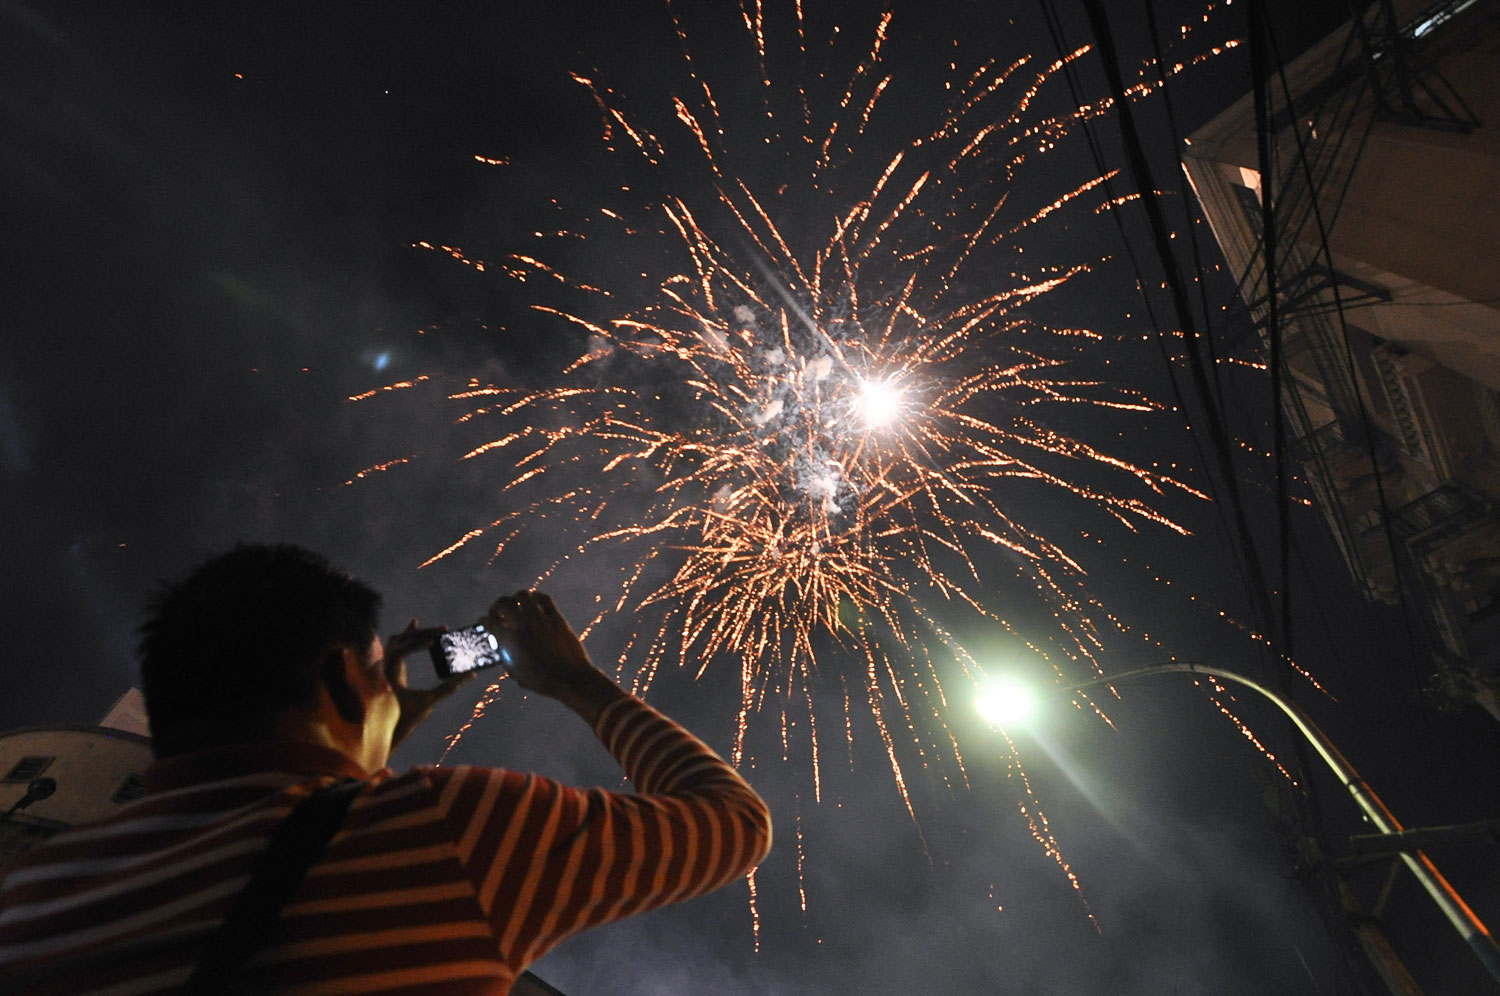 A man films the fireworks display using his phone in Chinatown, on the eve of Chinese New Year in Manila, Philippines,  Jan. 30, 2014.